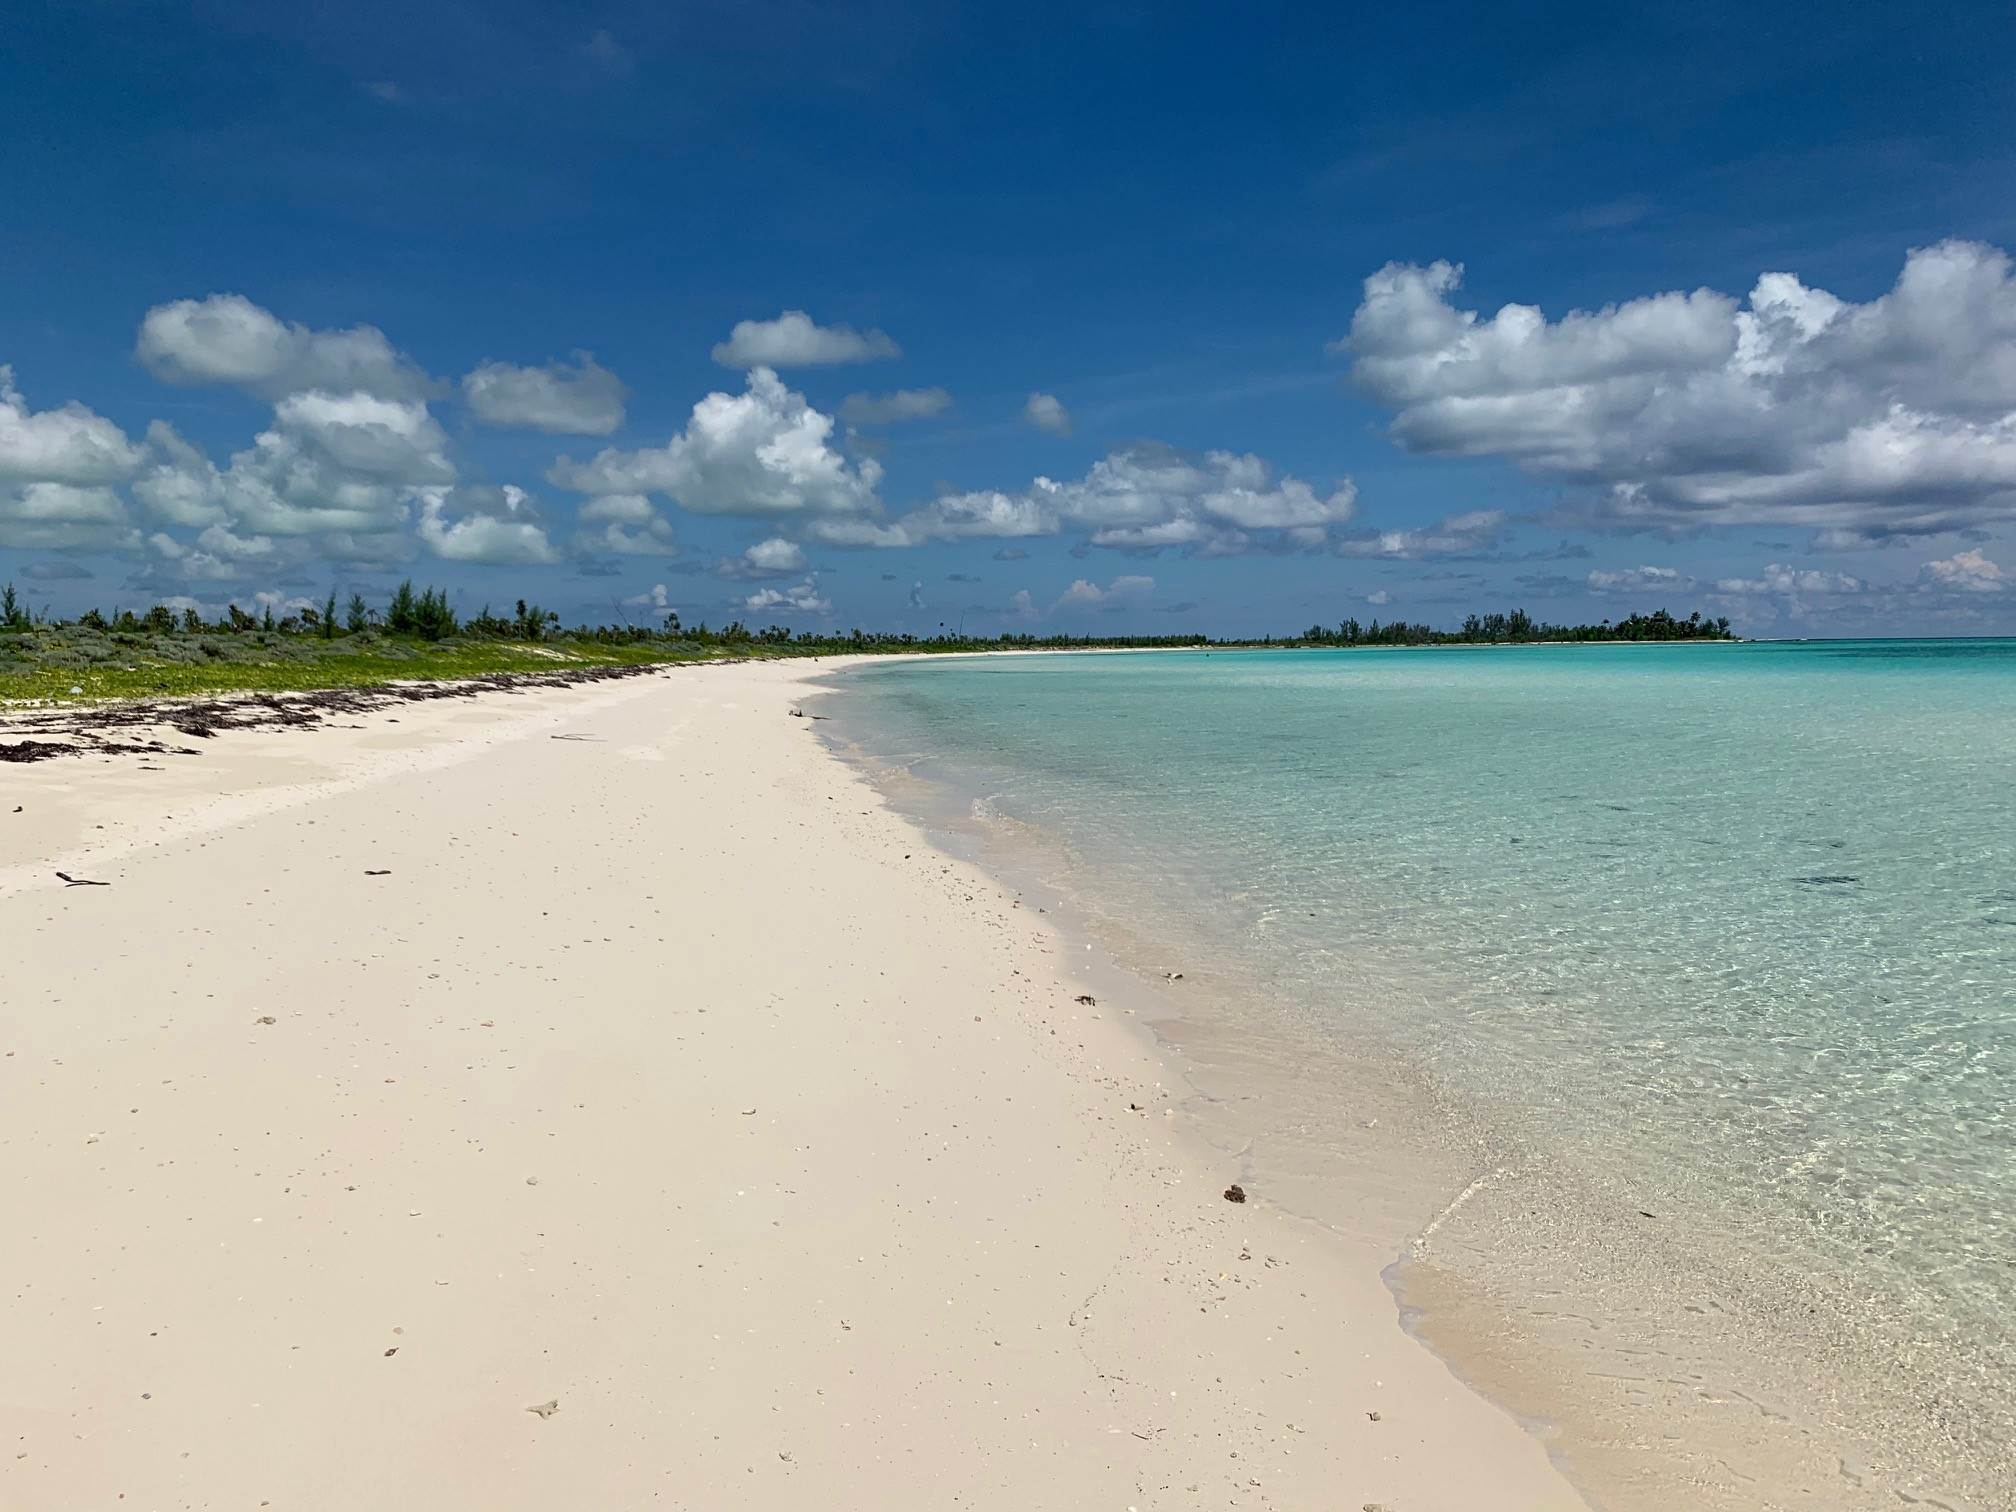 8. Land for Sale at Lot 29 Chub Cay - MLS 38796 Chub Cay, Berry Islands, Bahamas